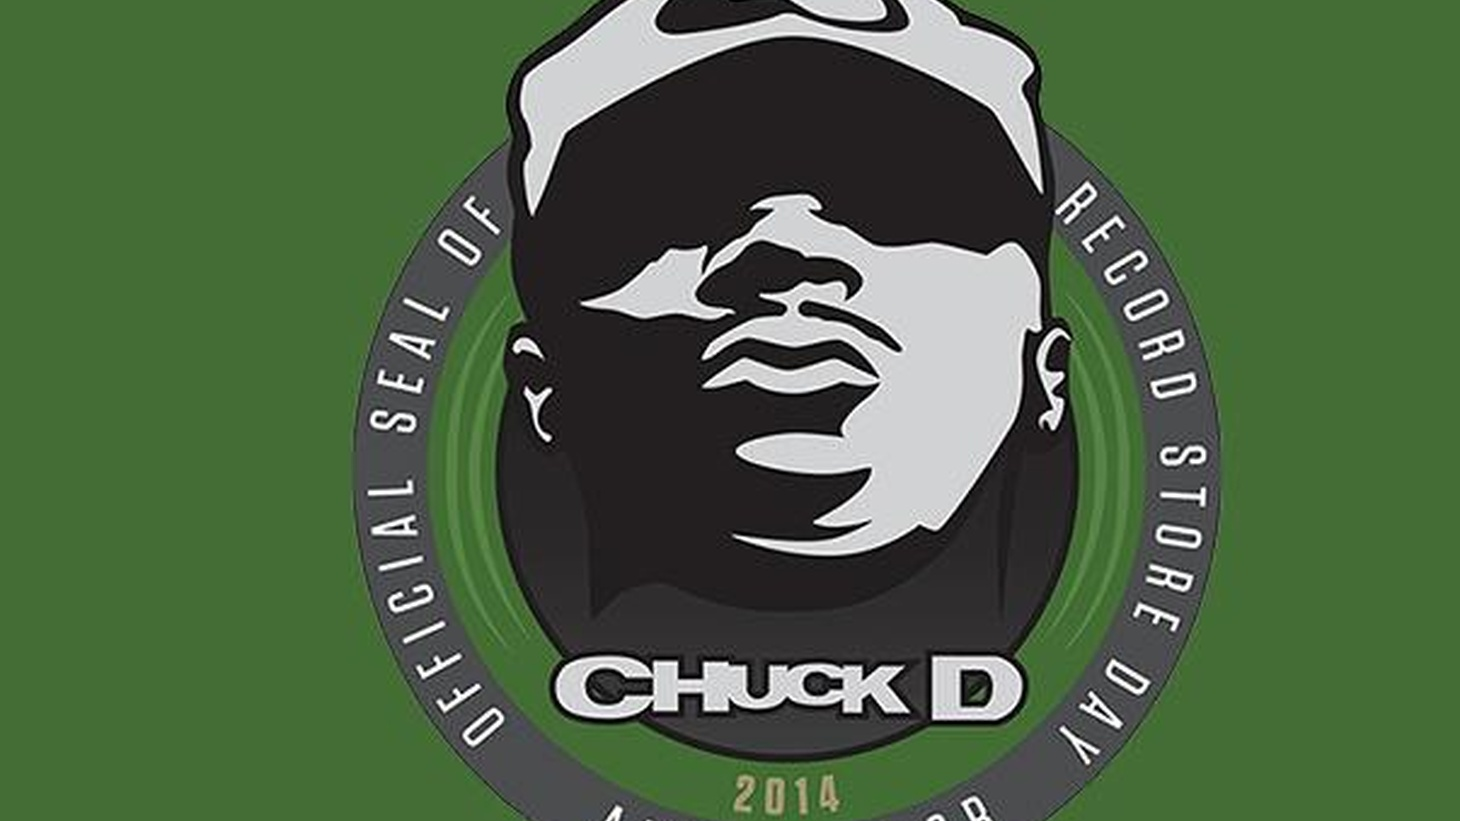 Chuck D, leader of the legendary rap group Public Enemy, will join Raul Campos to talk about Record Store Day and more.